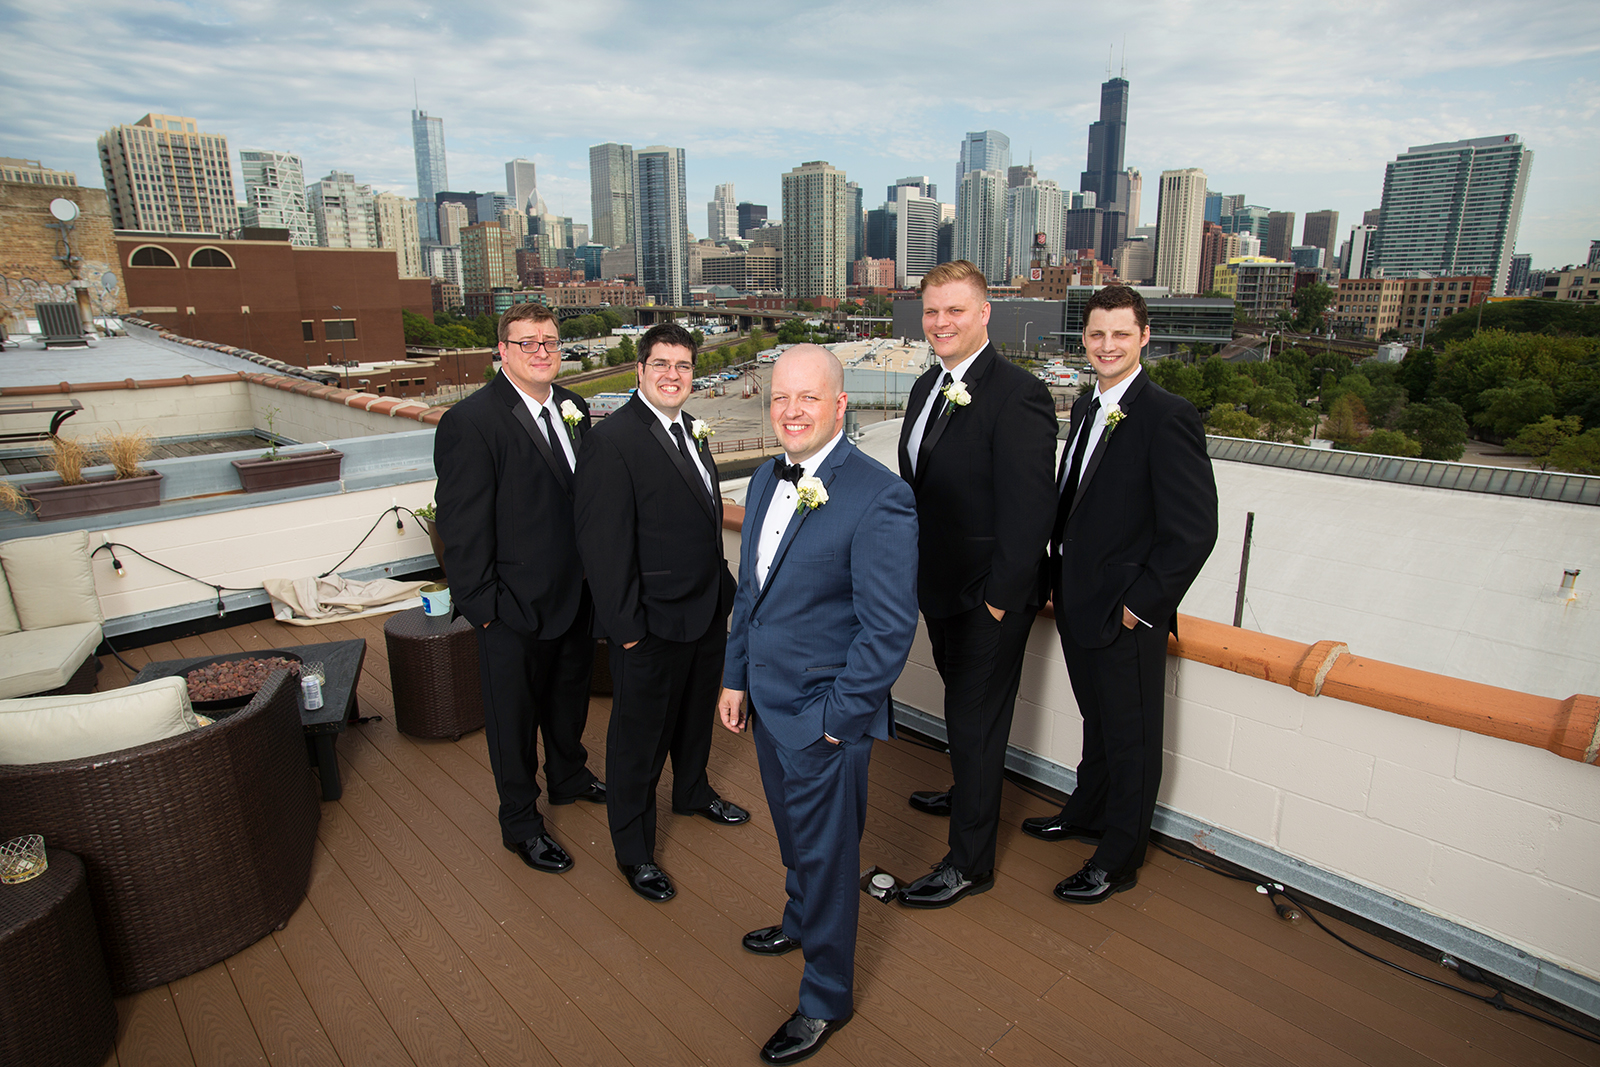 Groomsmen Portraits Rooftop Chicago